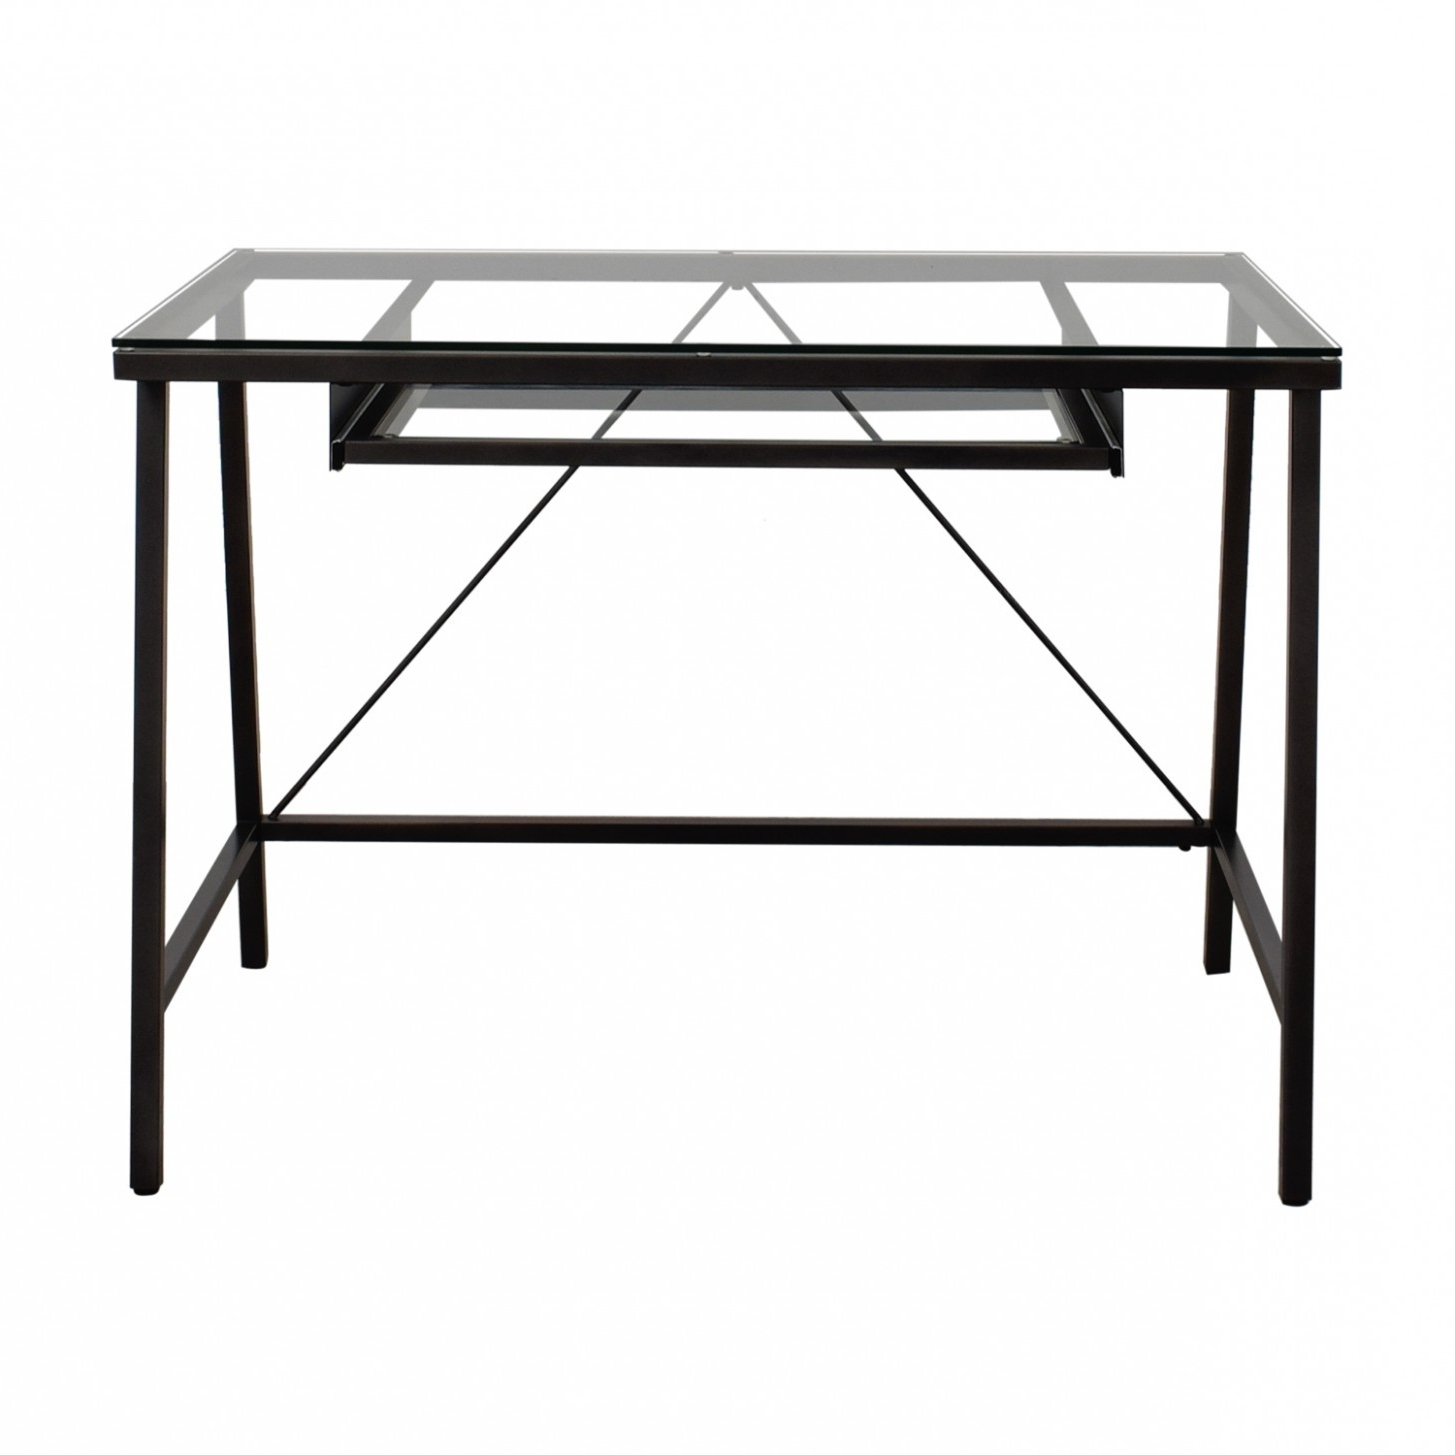 Cb2 Rolling Cart Desk Luxury 3 Ways To Style And Use Ikea S Kallax With Regard To Favorite Go Cart White Rolling Coffee Tables (View 6 of 20)